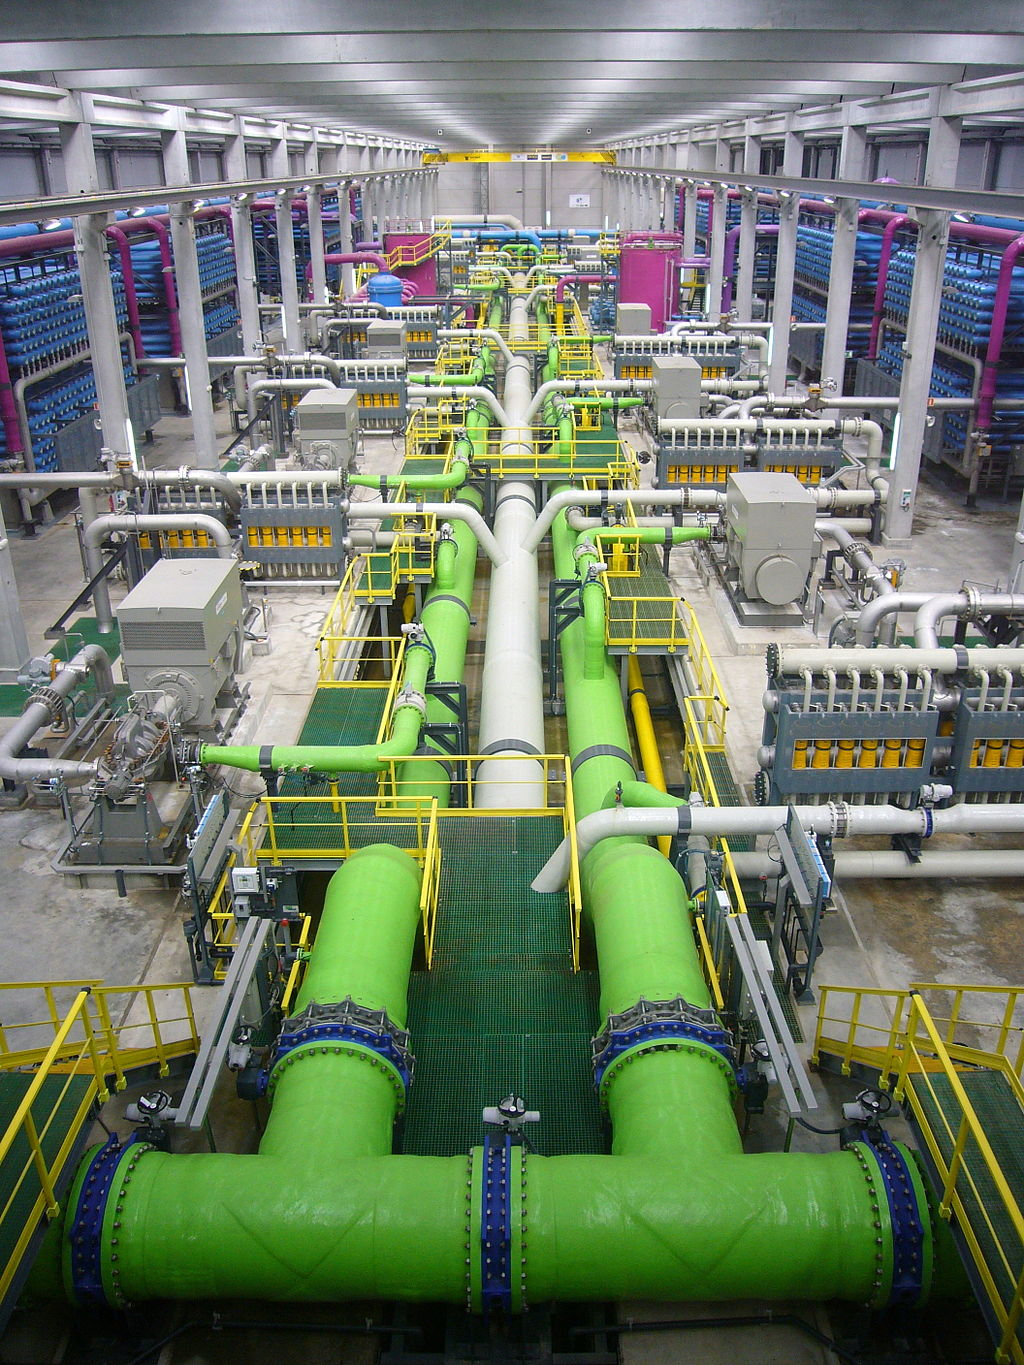 An image of a water processing plant showing color coded pipes and various containers they are leading to and from.